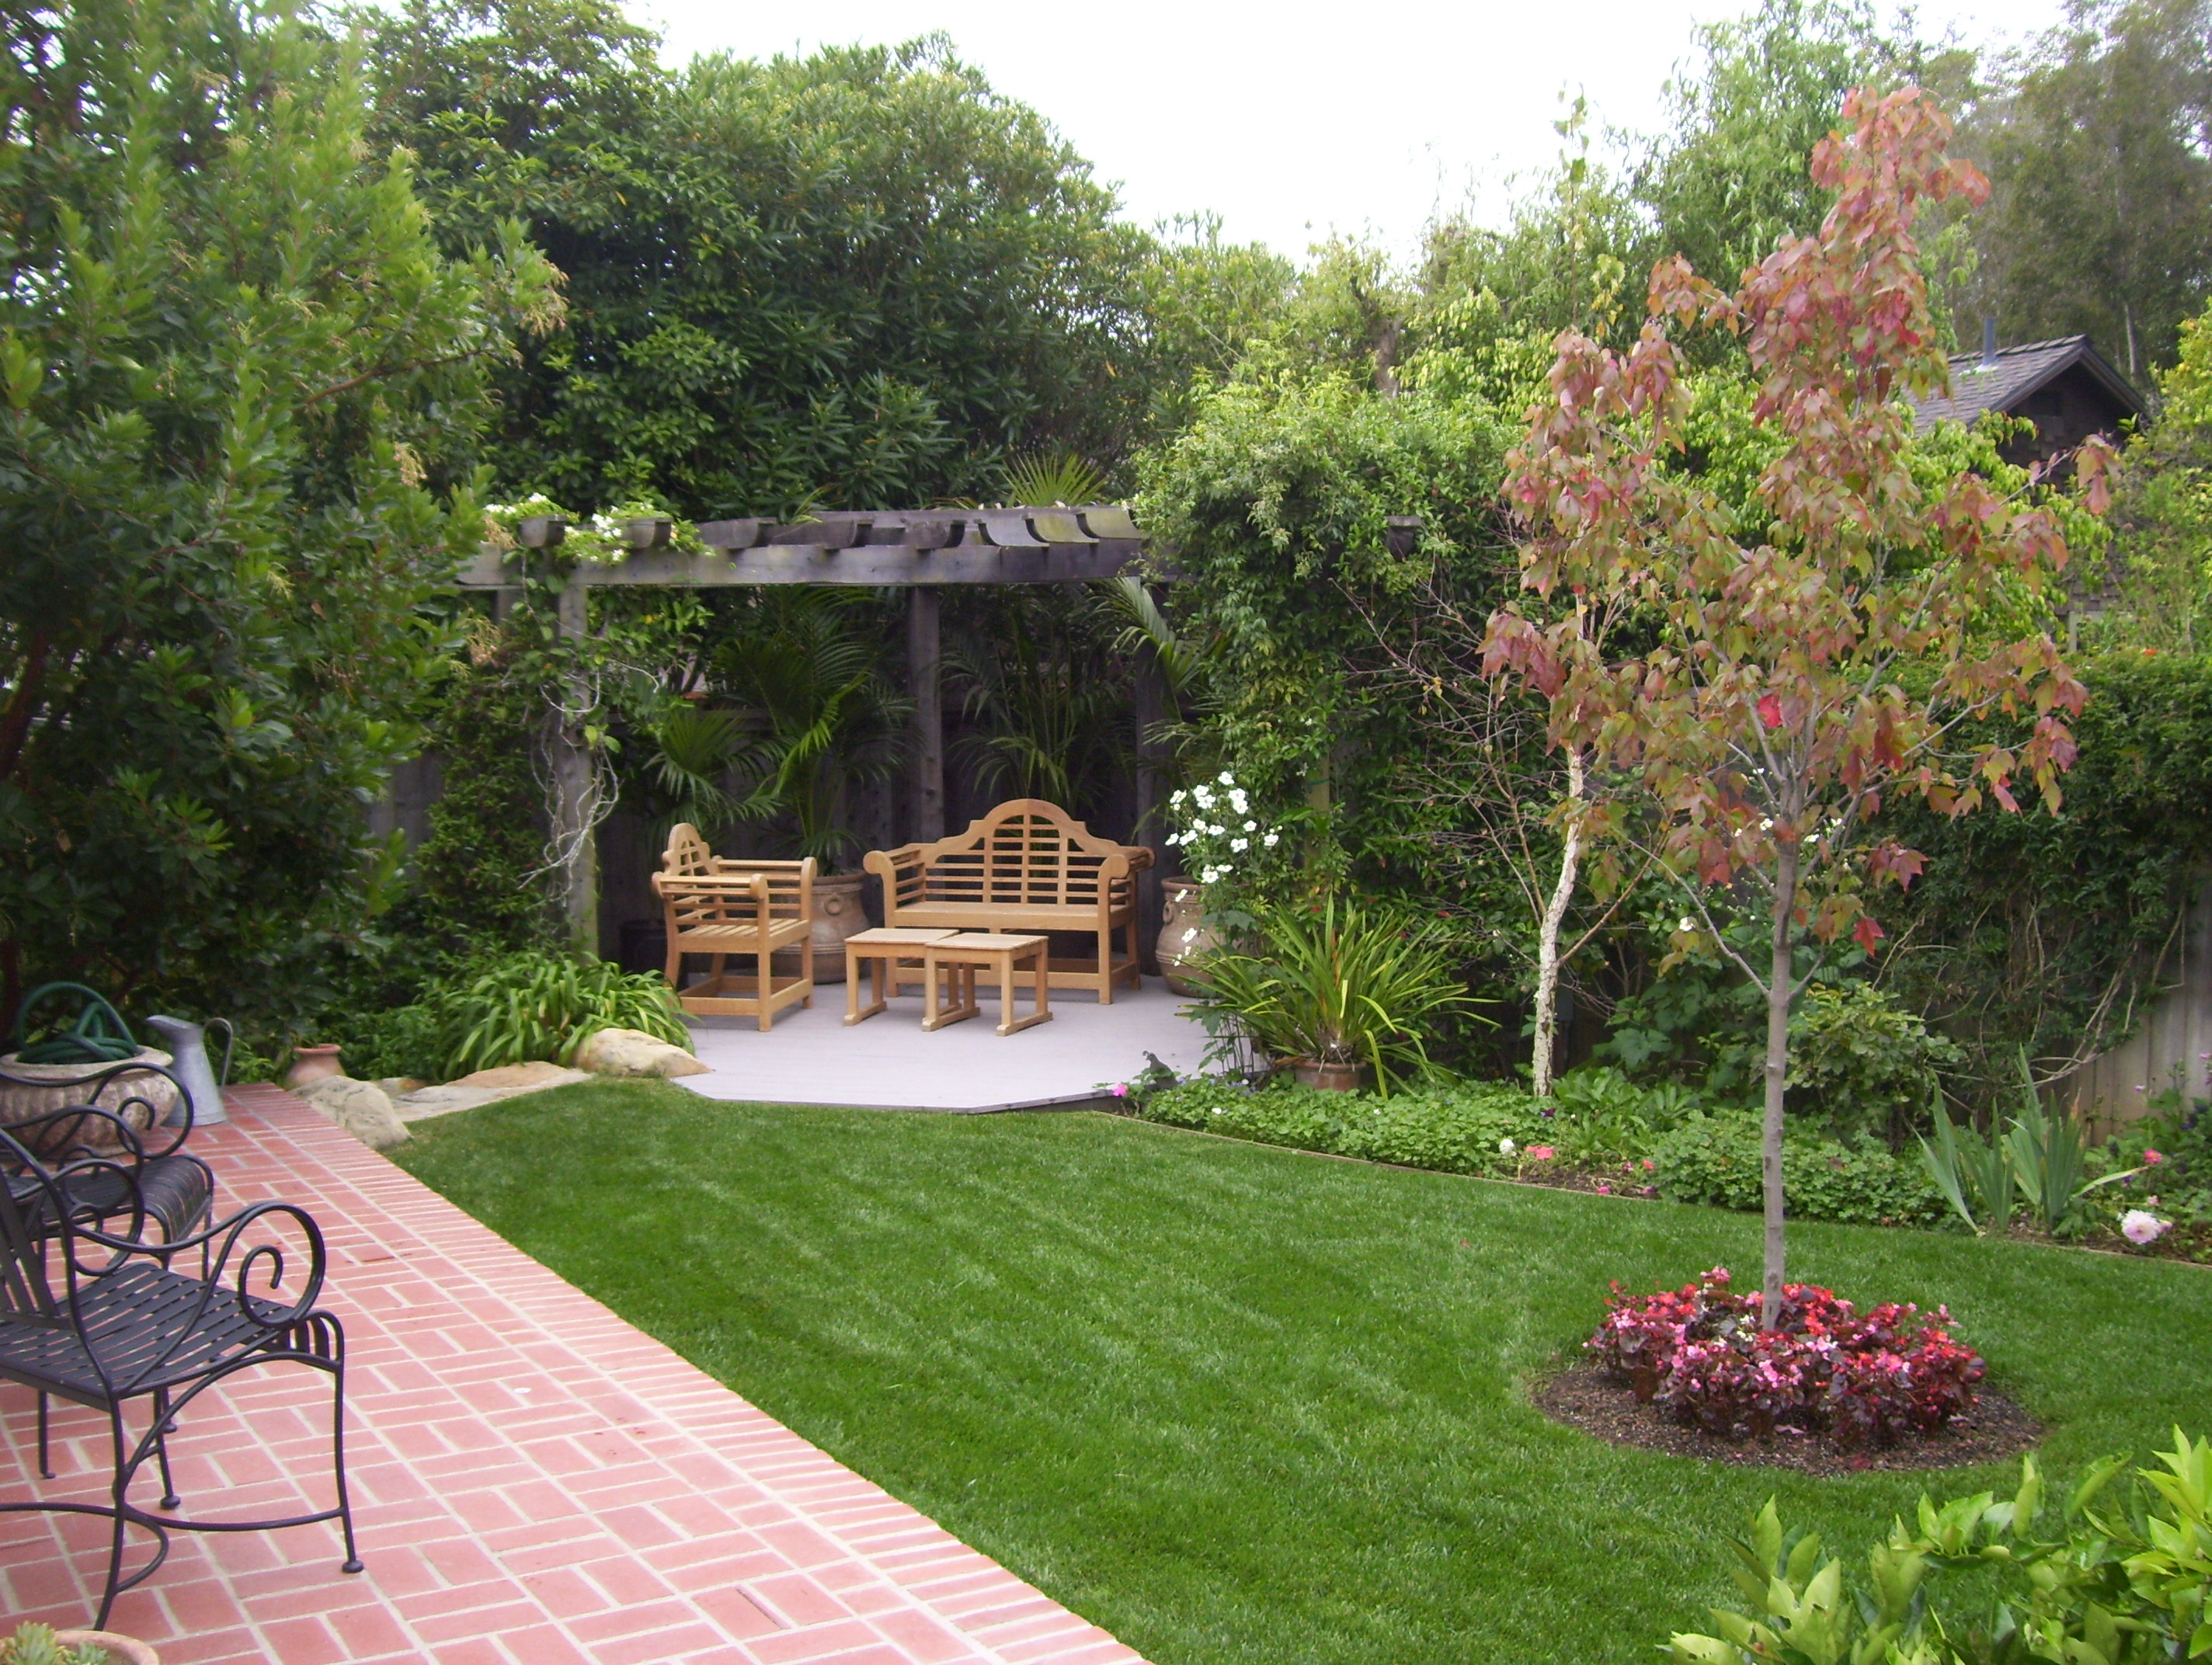 Backyard Landscaping Ideas Santa Barbara Down To Earth Landscapes with 10 Smart Concepts of How to Upgrade Backyard Landscape Pictures